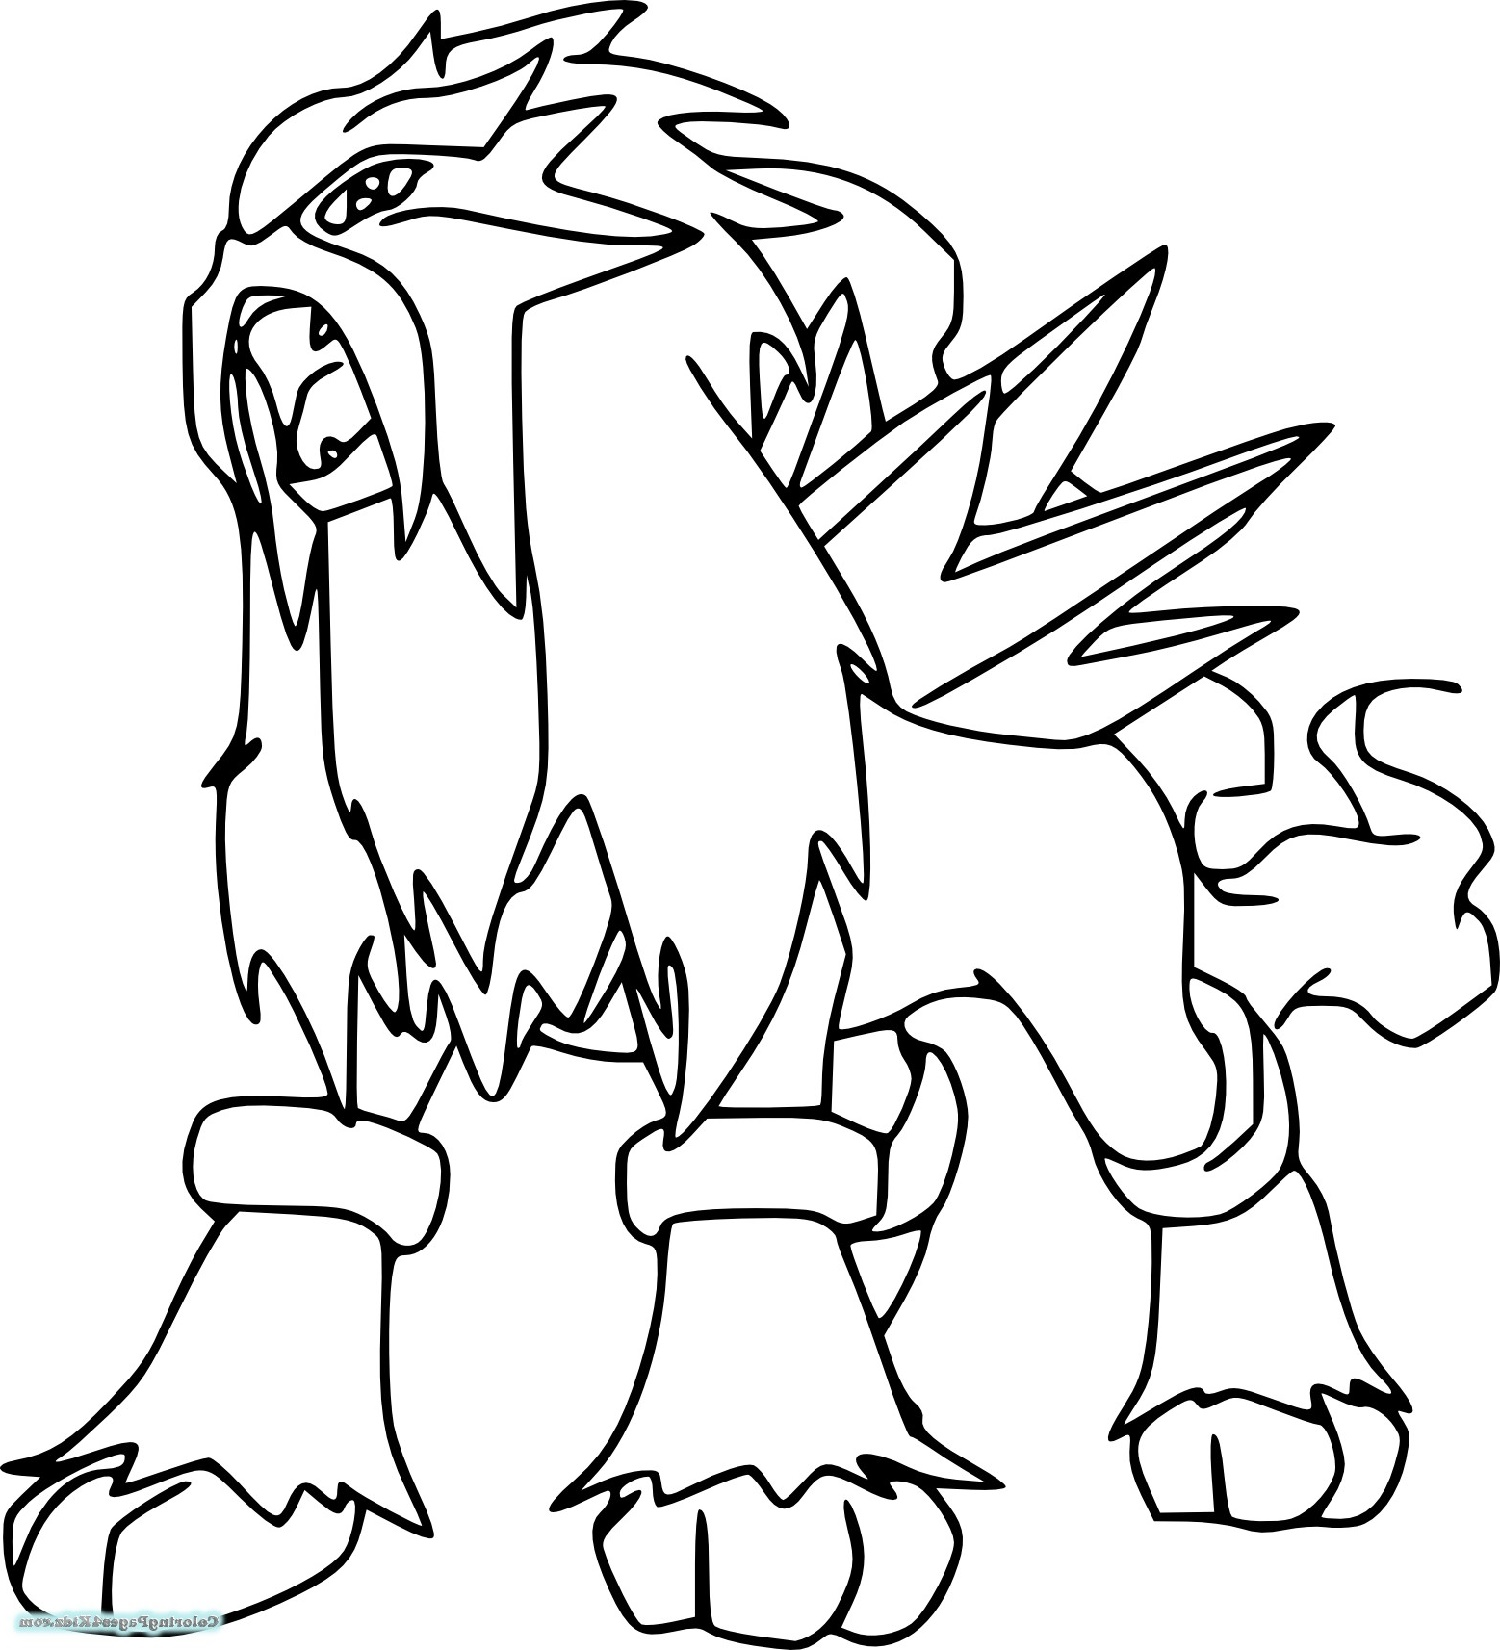 printable pokemon coloring pages 40 unique pokémon coloring pages to print printable pokemon coloring pages